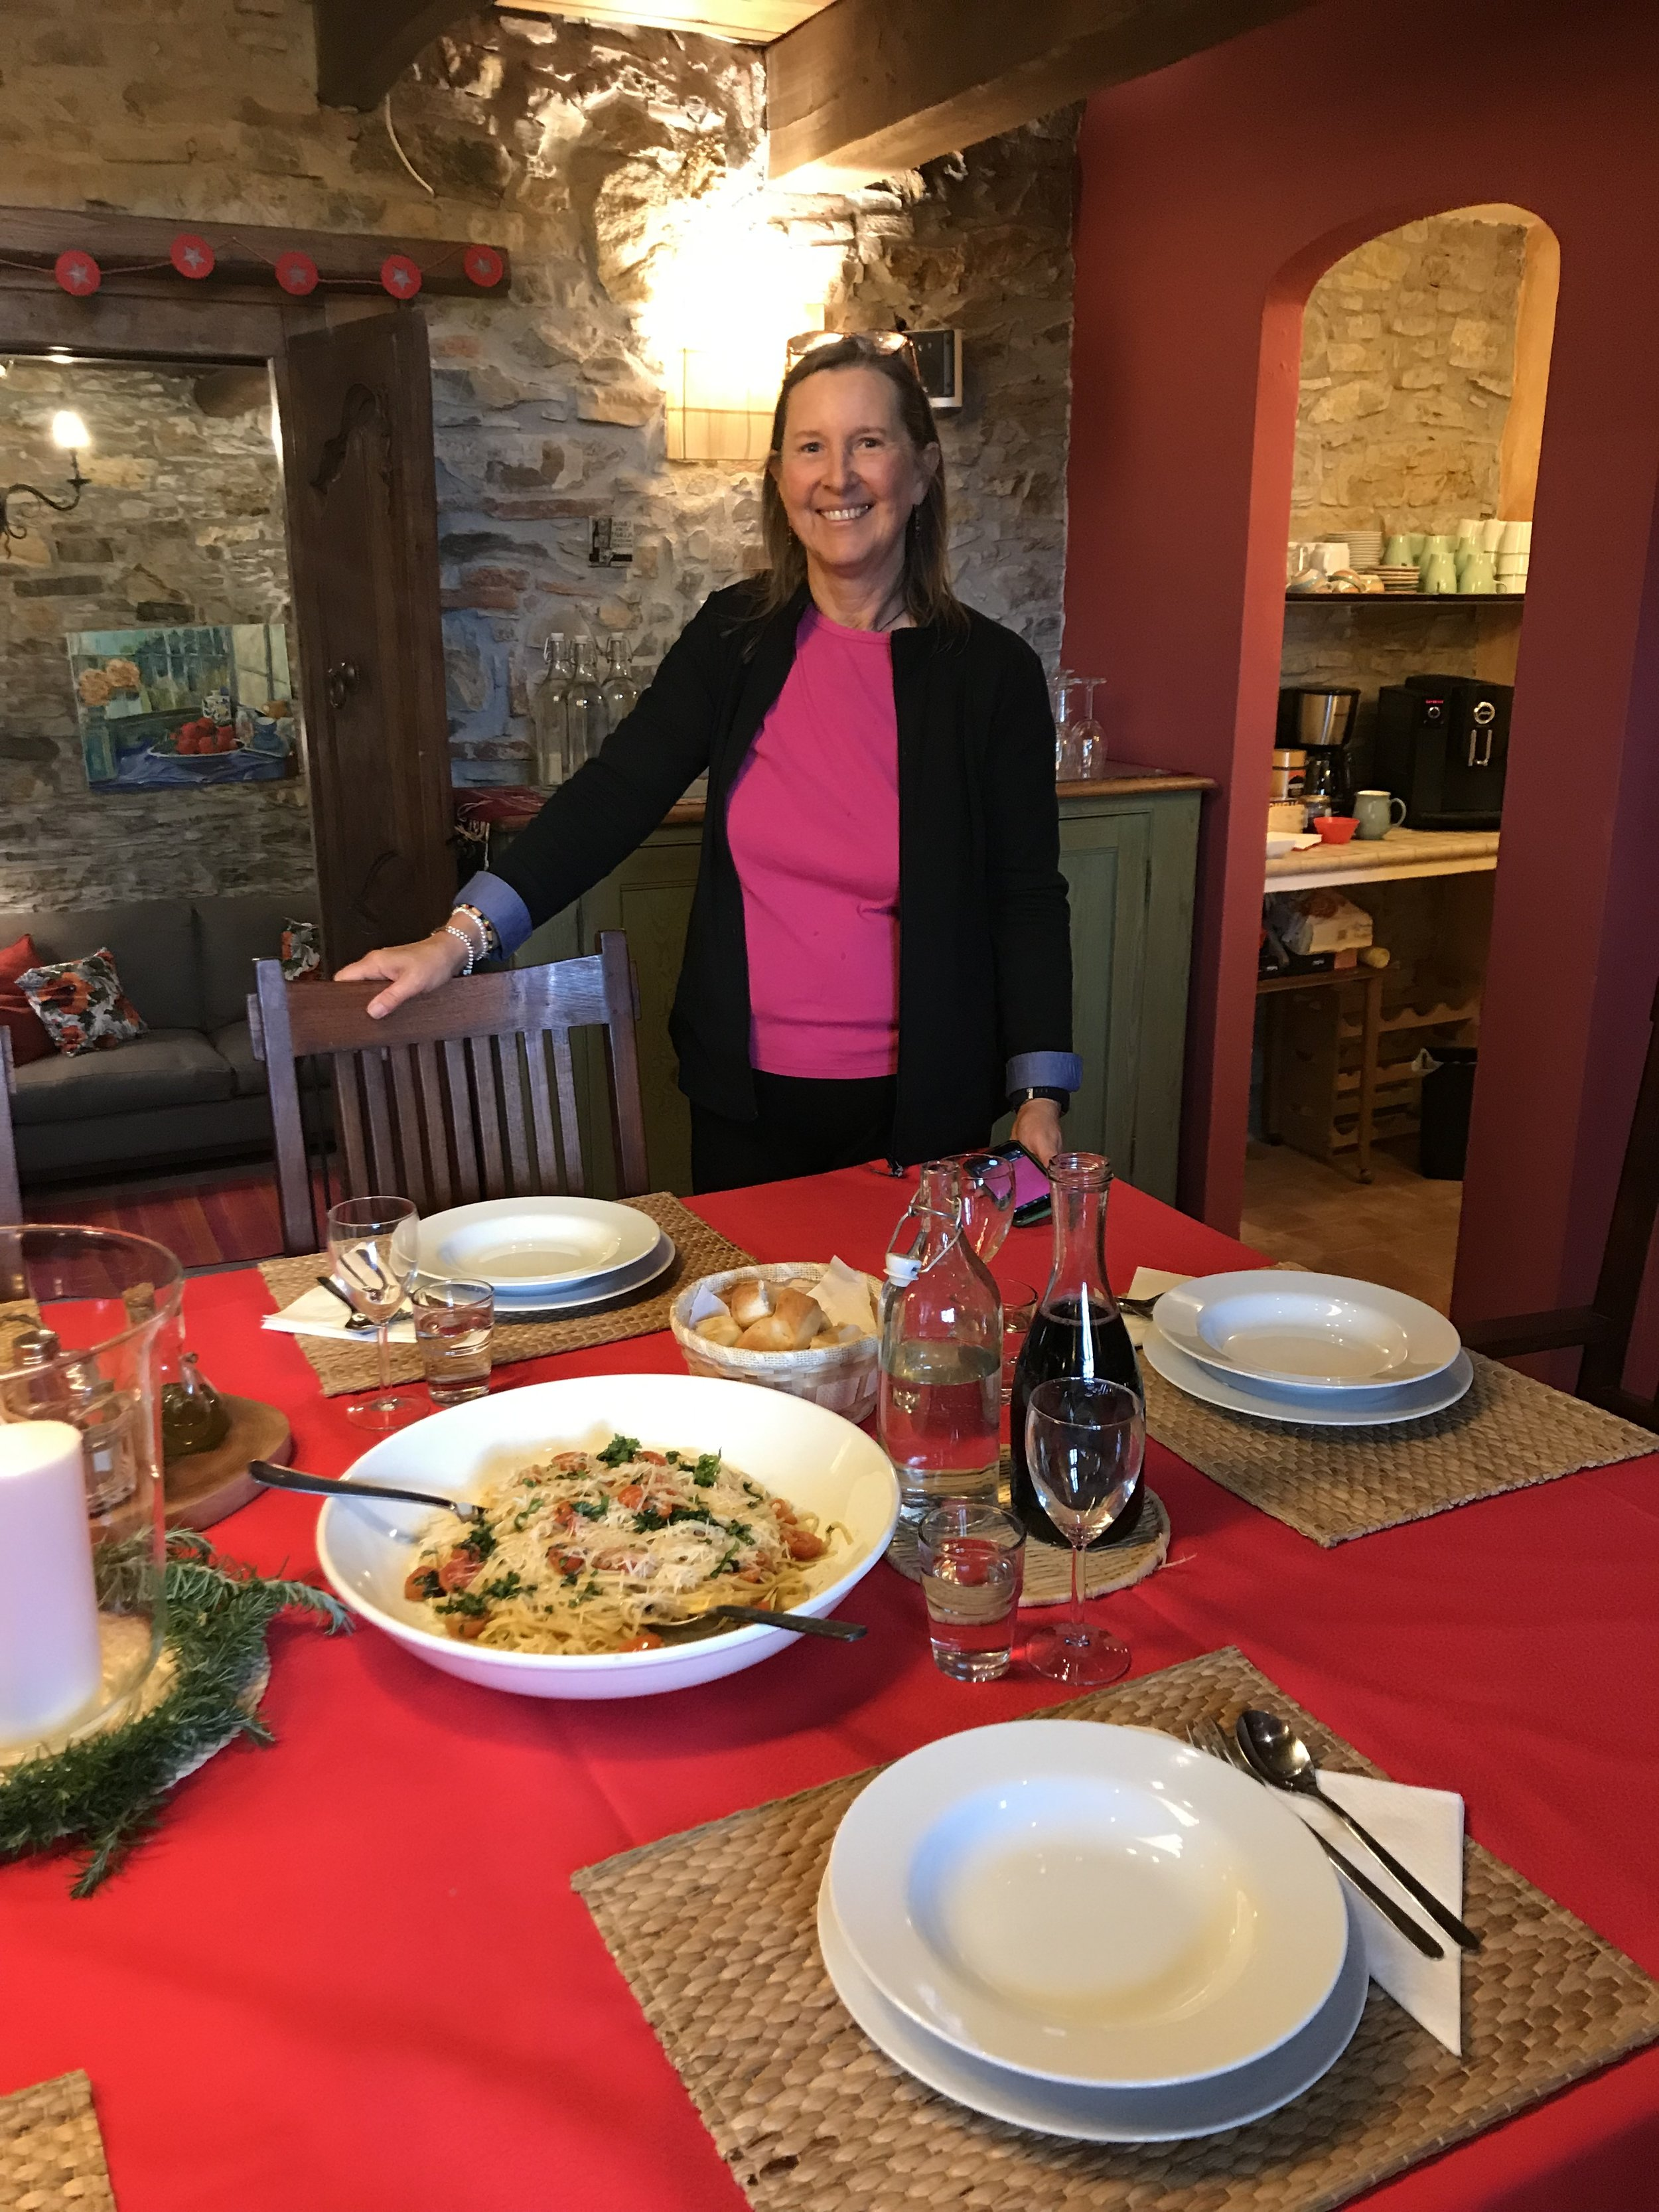 Helena with a typical lunch at Casa Fiori